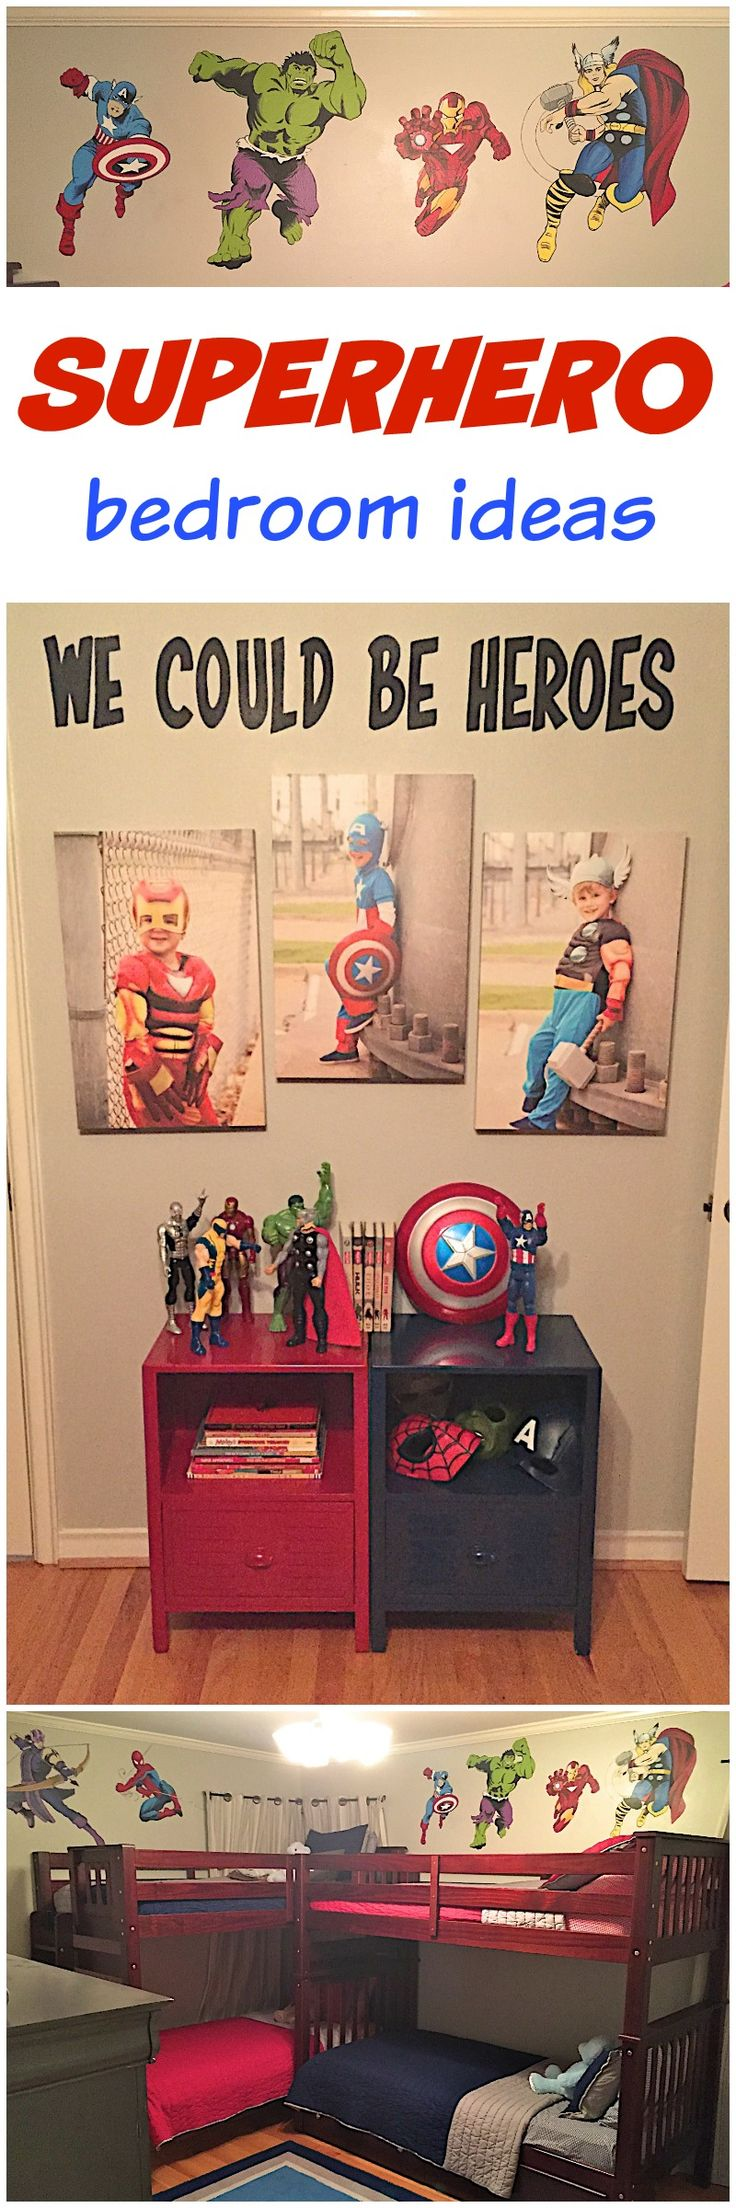 Superhero Bedroom Ideas